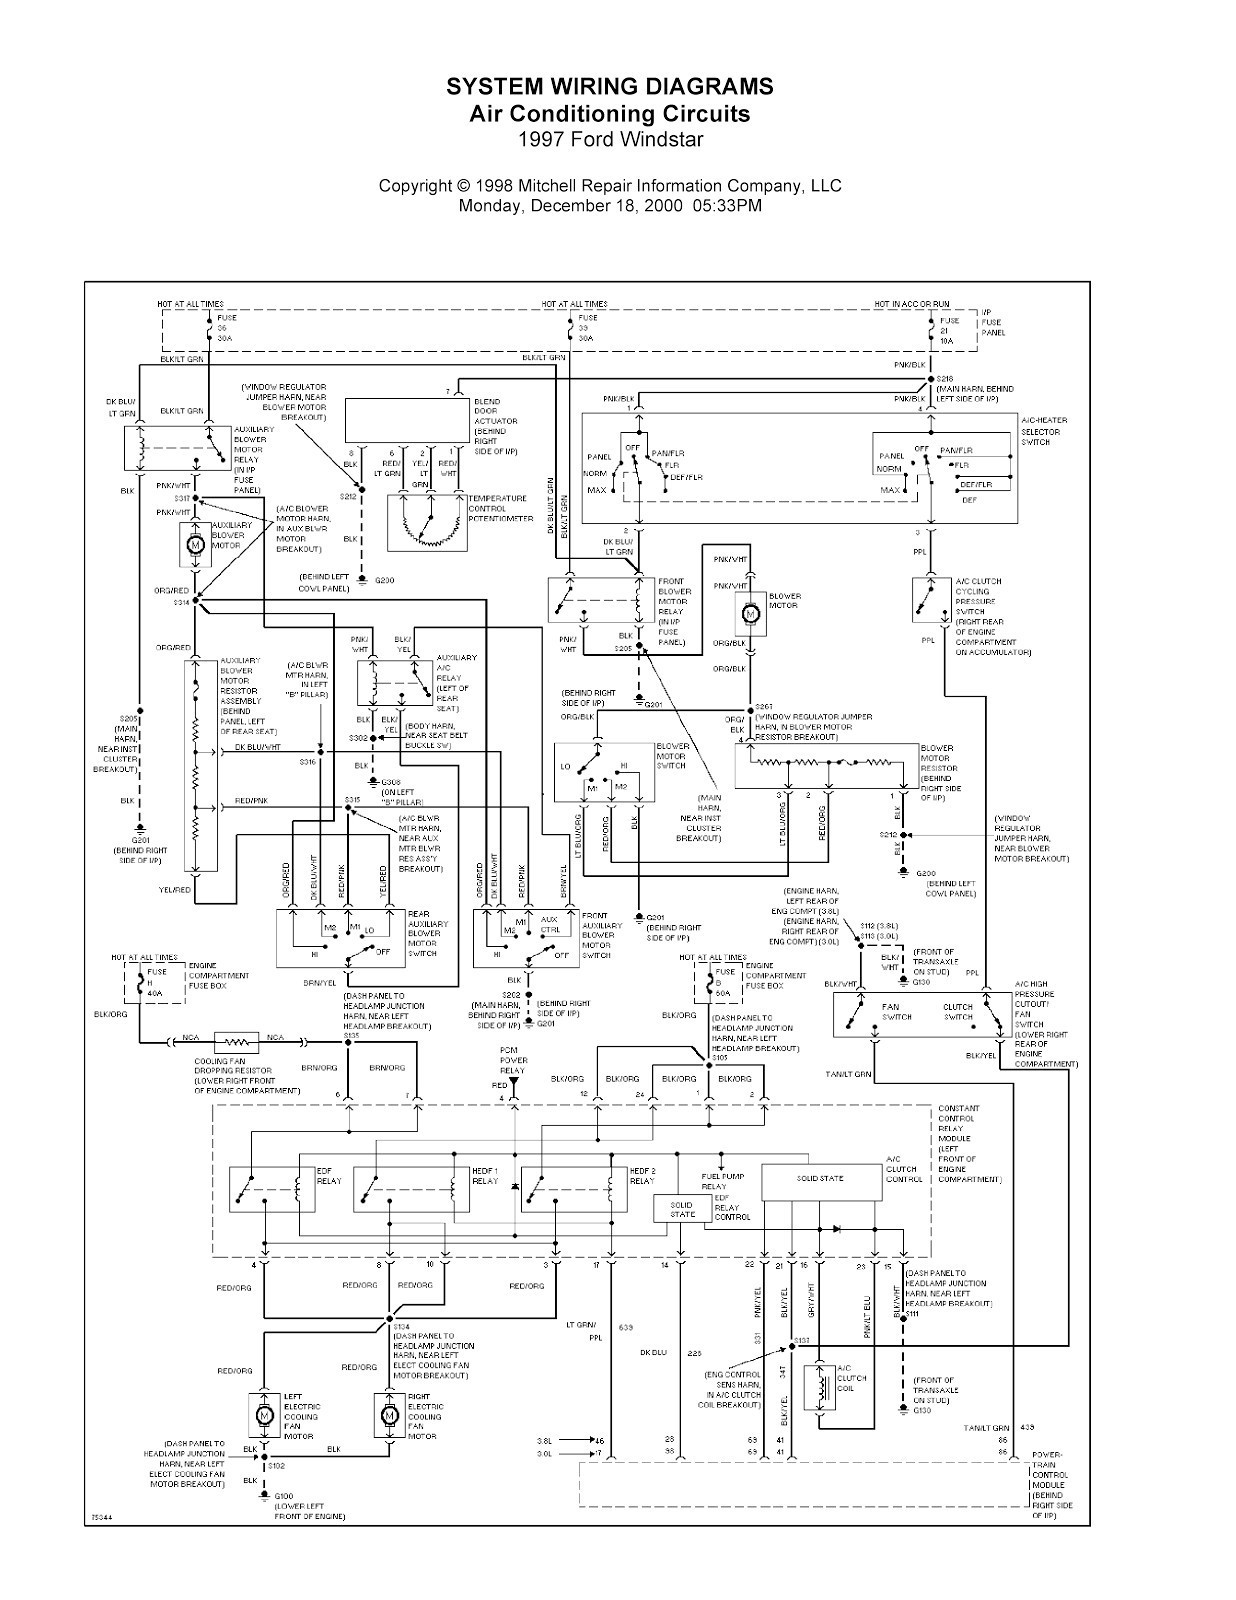 Wiring Diagram For 2003 Ford Windstar - Wiring Diagram Schematic on 1967 chevelle wiring harness diagram, honda ridgeline stereo wiring diagram, gmc sierra wiring harness diagram, ford expedition wiring harness diagram, honda accord ignition wiring diagram, 96 honda accord air conditioner wiring diagram, honda prelude wiring-diagram, jeep cherokee wiring harness diagram, honda accord schematics, 89 honda crx engine diagram, honda radio wiring harness, honda cr-v front suspension diagram, 1991 honda crx wiring diagram, 2009 honda pilot wiring diagram, saturn vue wiring harness diagram, honda accord stereo wiring, 2005 chevy malibu radio wiring diagram, ford f250 wiring harness diagram, 2008 honda fit fuse box diagram, 2014 honda accord wiring diagram,